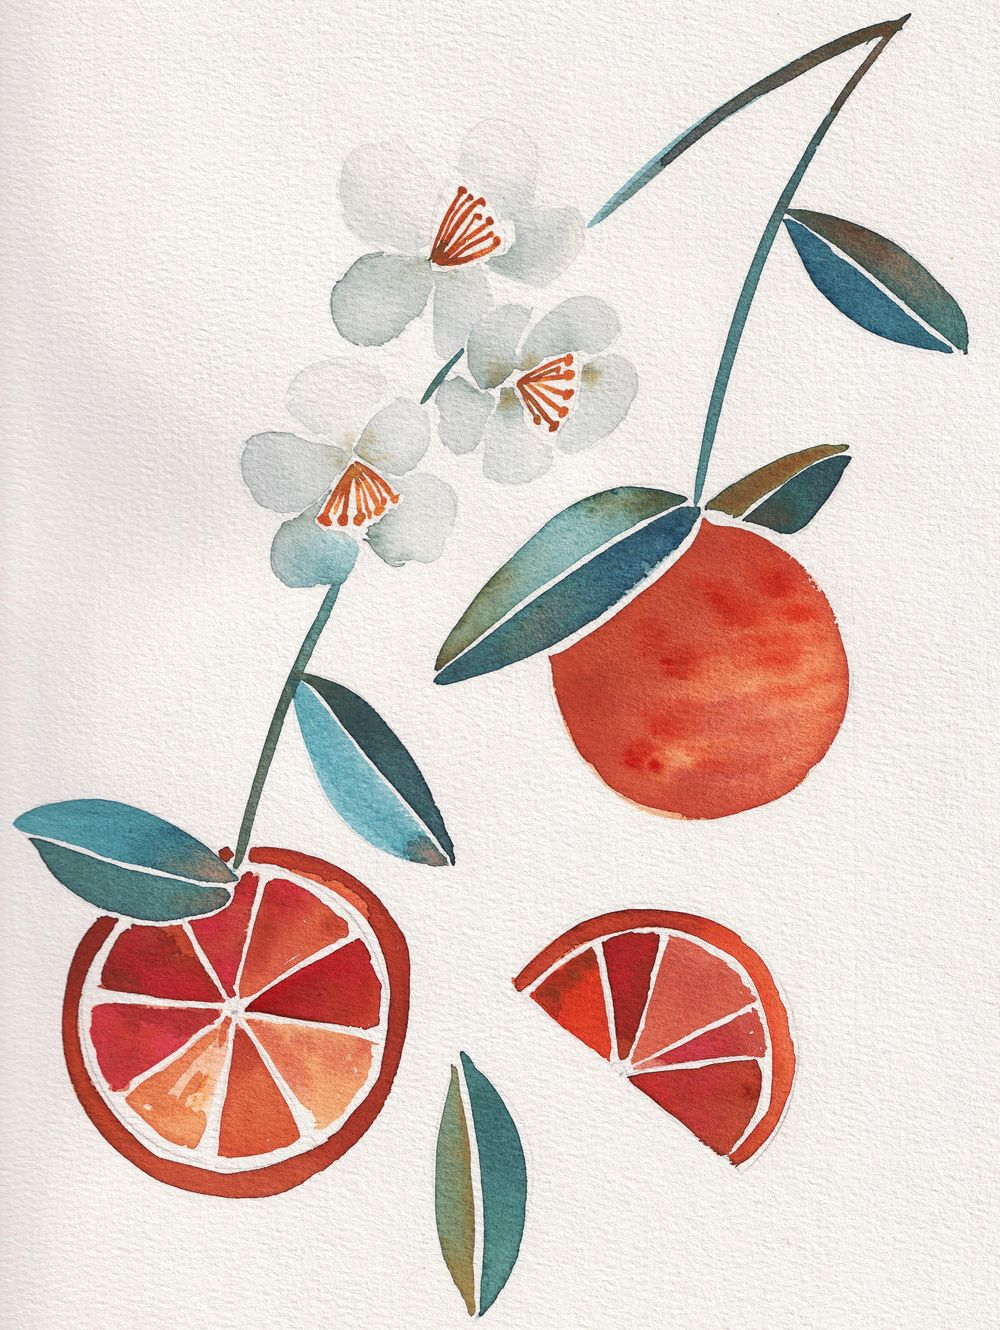 Summer fruits - image 1 - student project